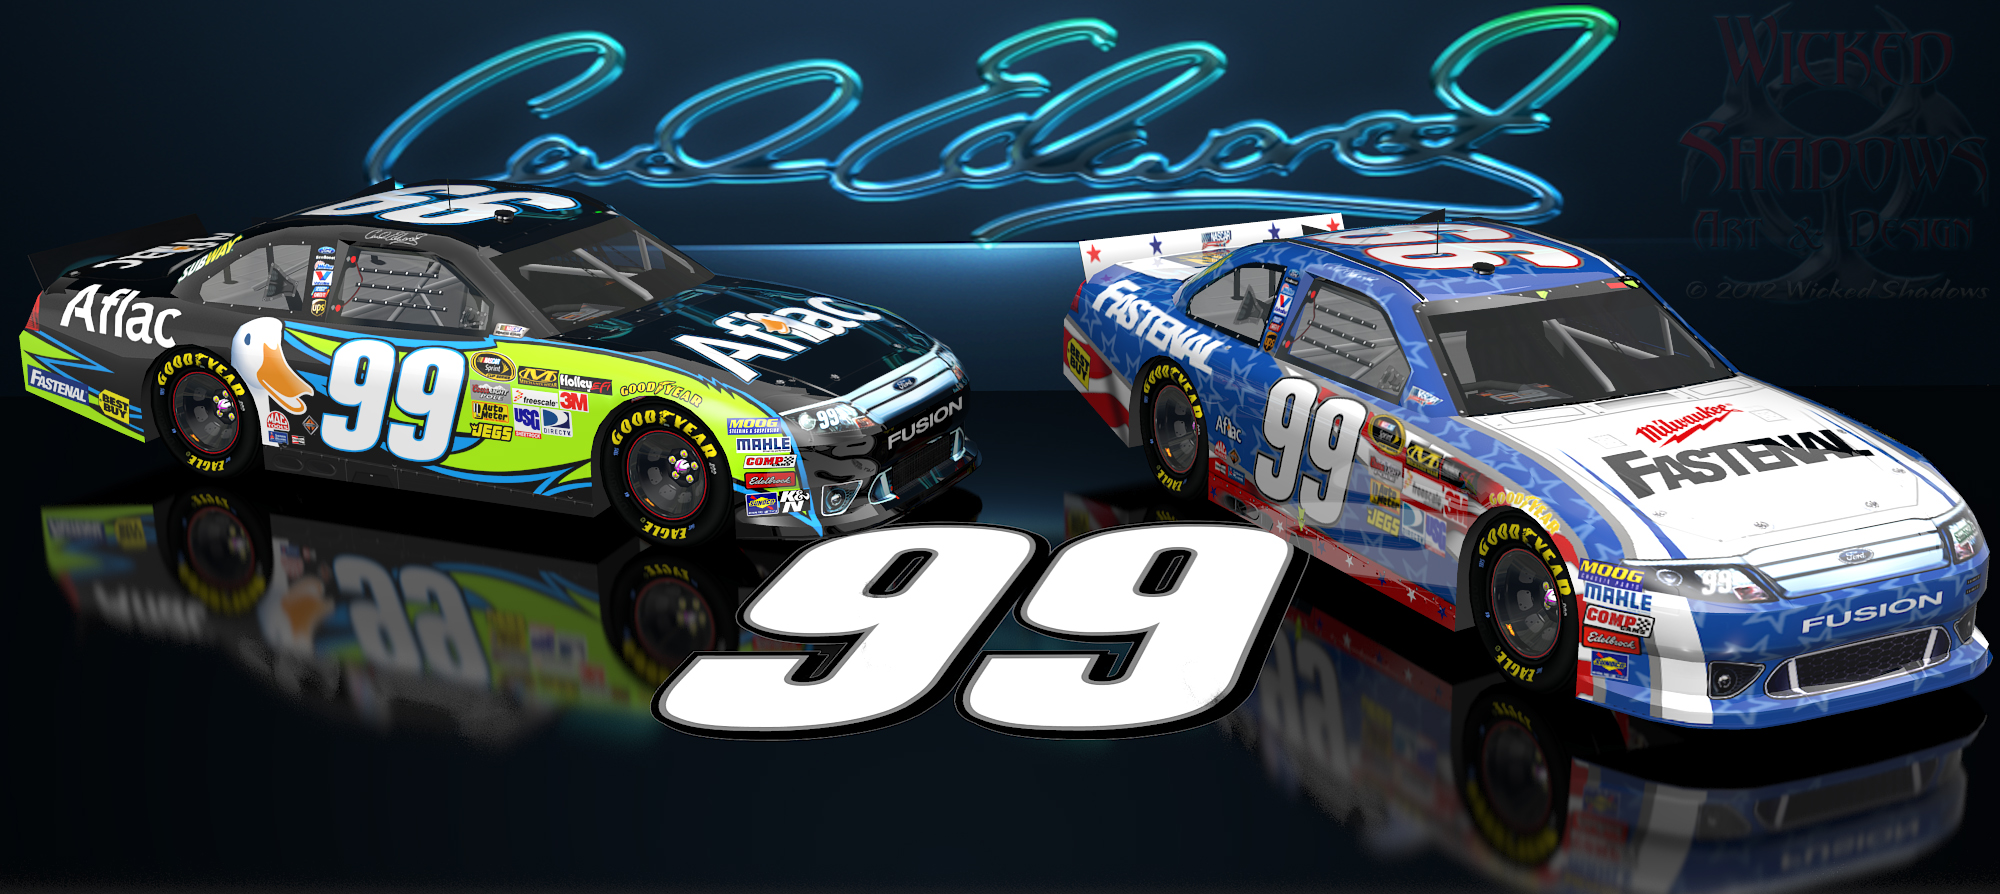 Wallpapers By Wicked Shadows Jimmie Johnson Nascar Unites: Wallpapers By Wicked Shadows: Carl Edwards Aflac Nascar